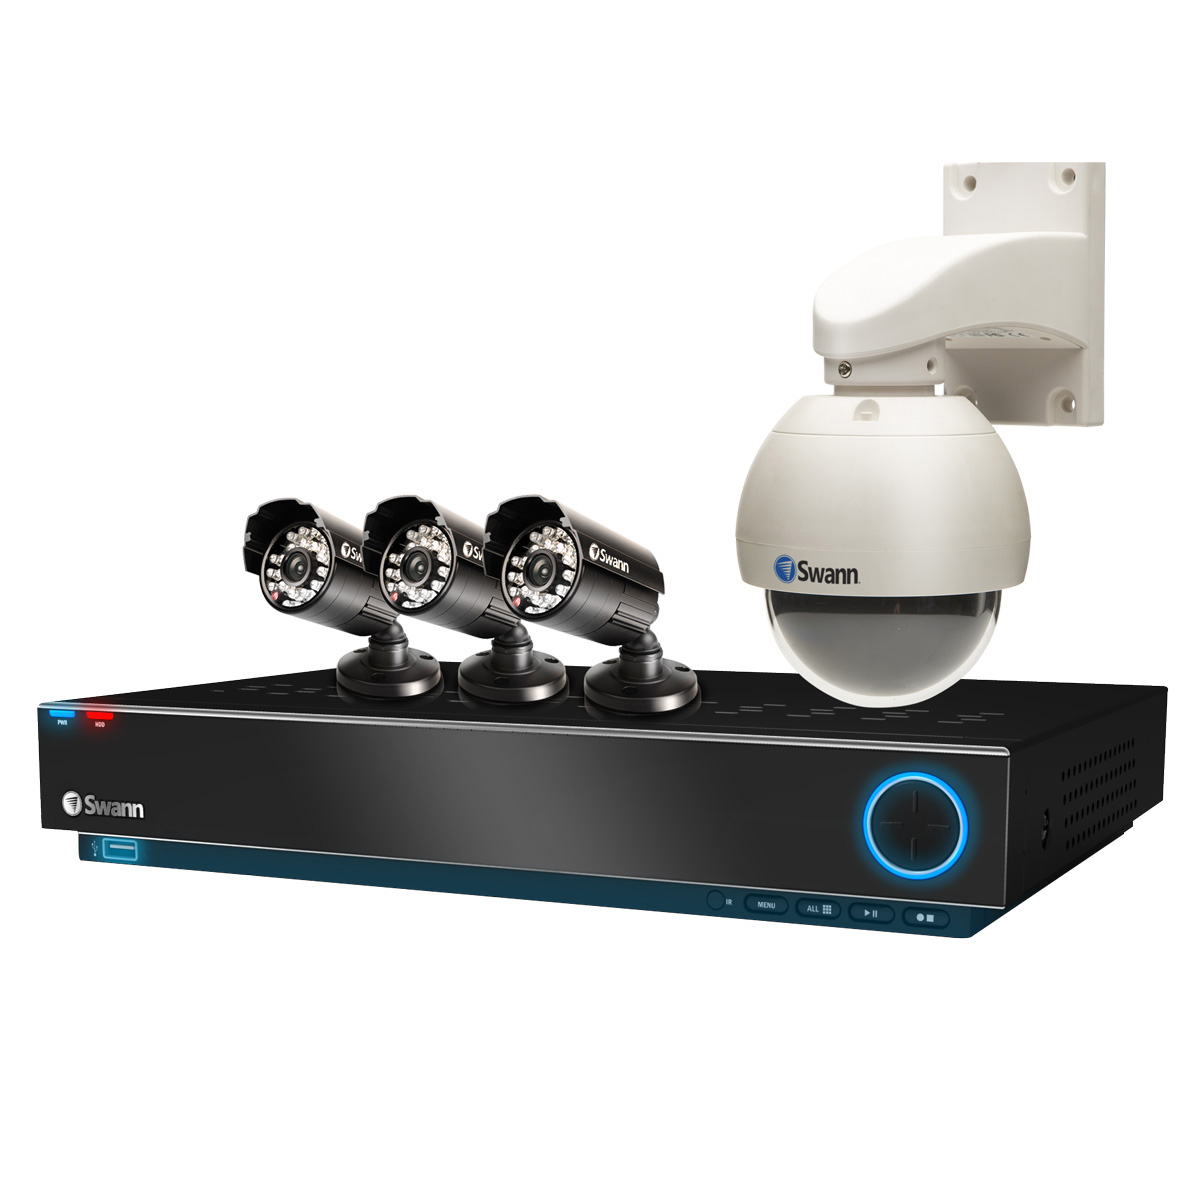 Image Result For Iris Home Security